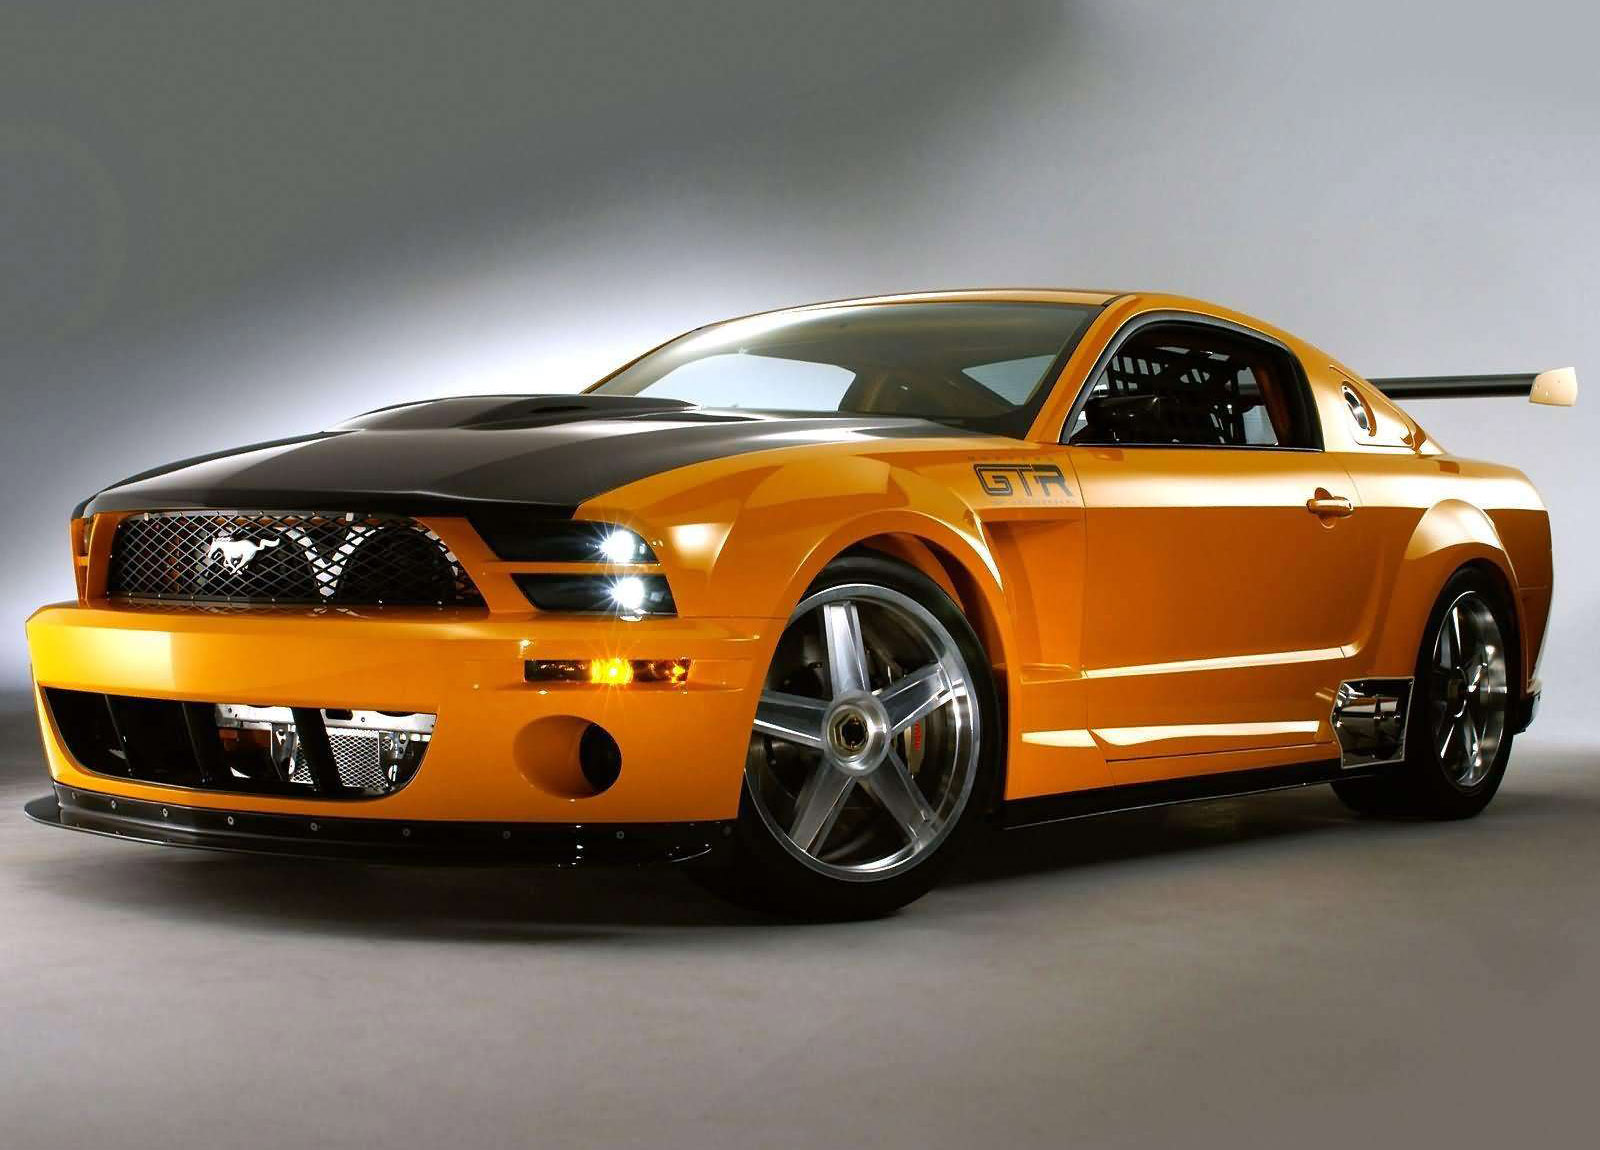 Ford Mustang GTR 40th Anniversary Concept photo #1